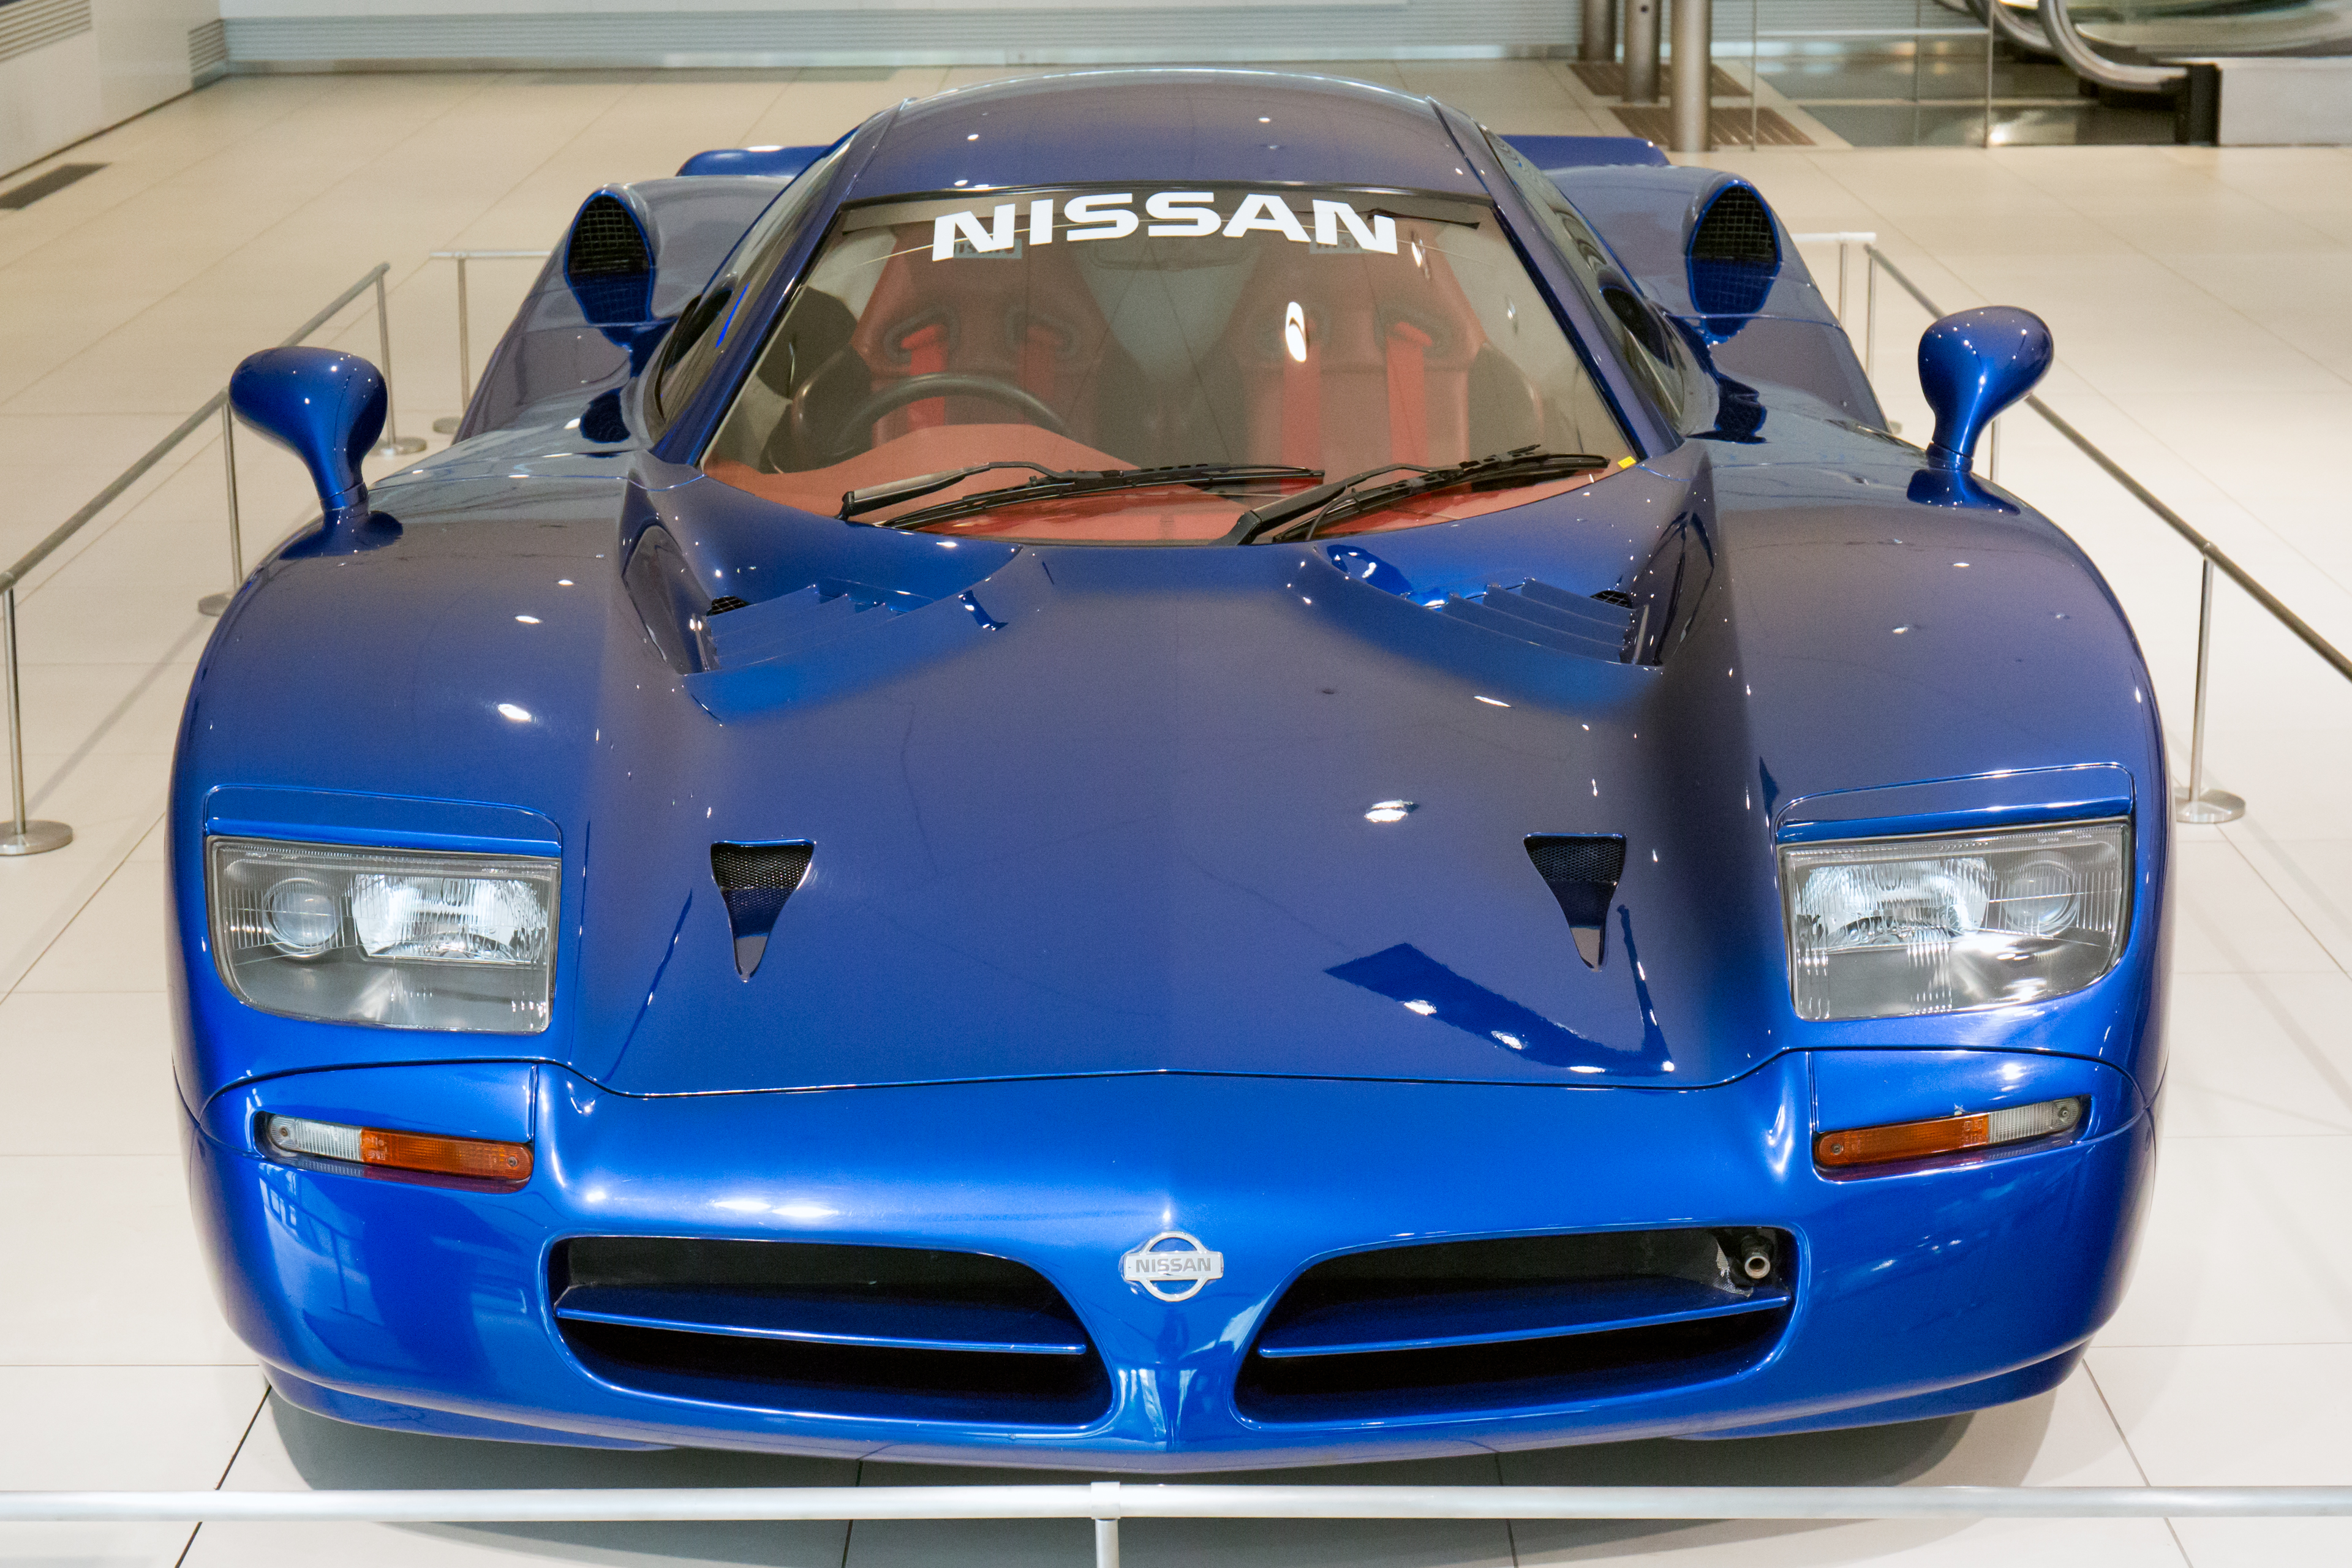 File Nissan R390 Gt1 Road Car Front 2017 Global Headquarters Gallery